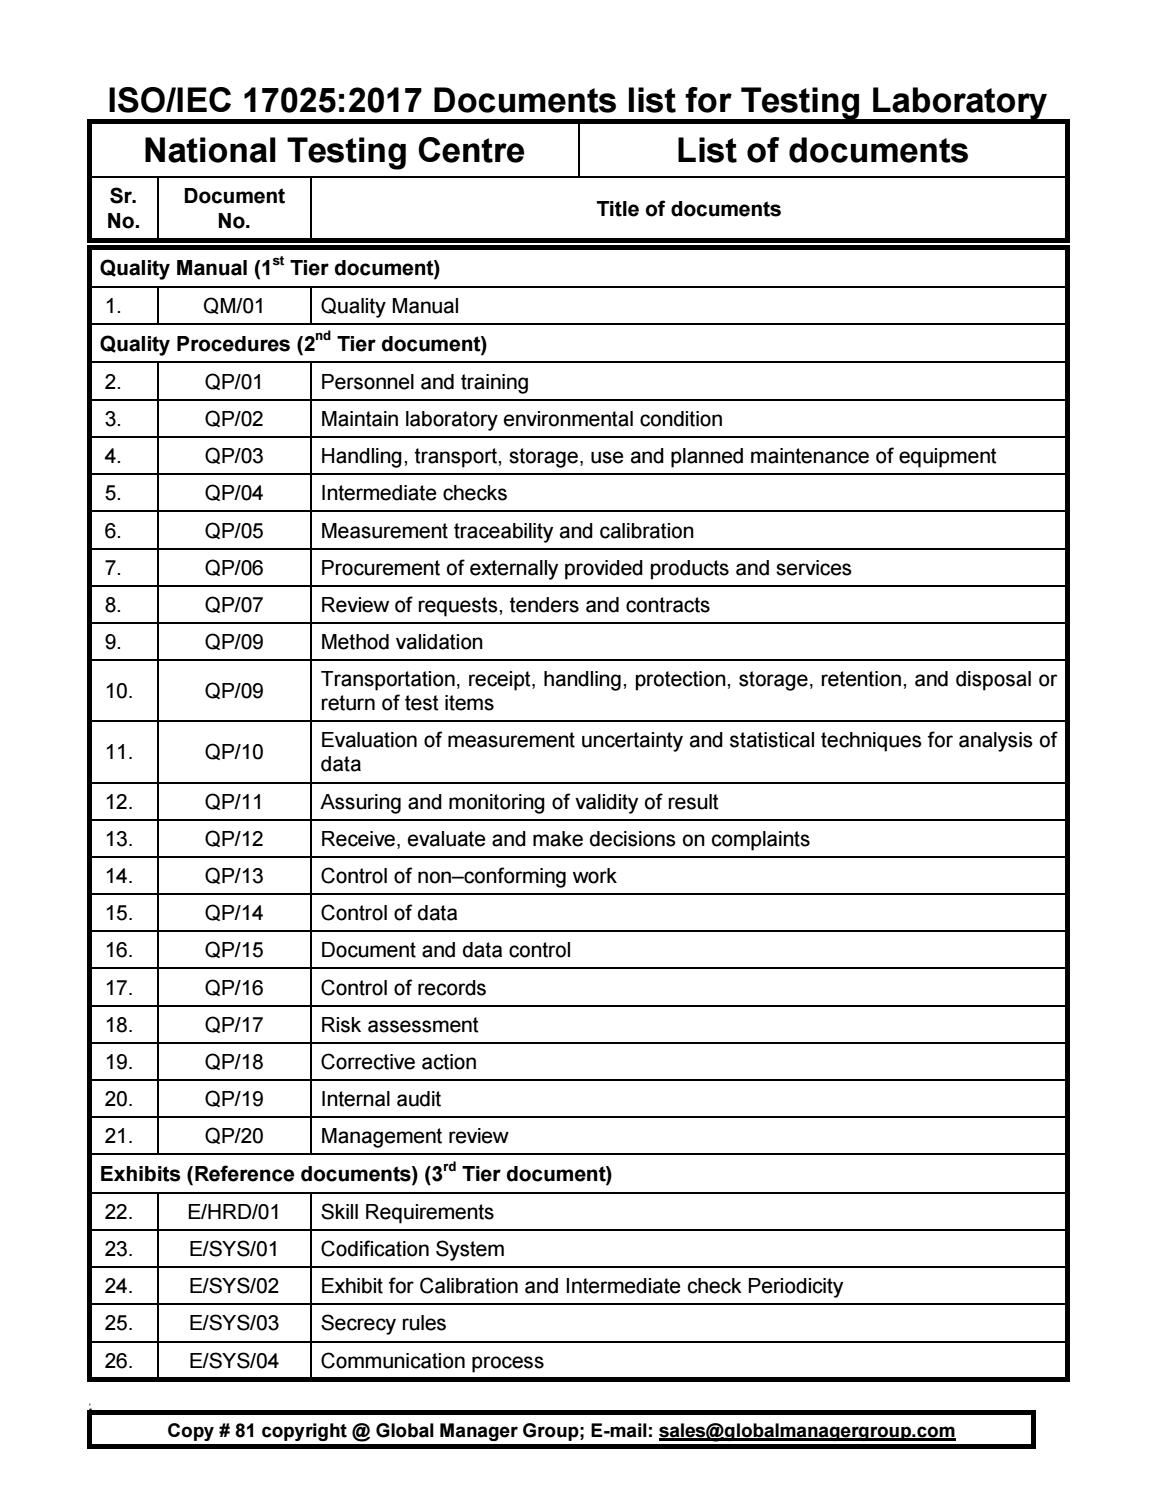 ISO 170252017 documents list for testing laboratory